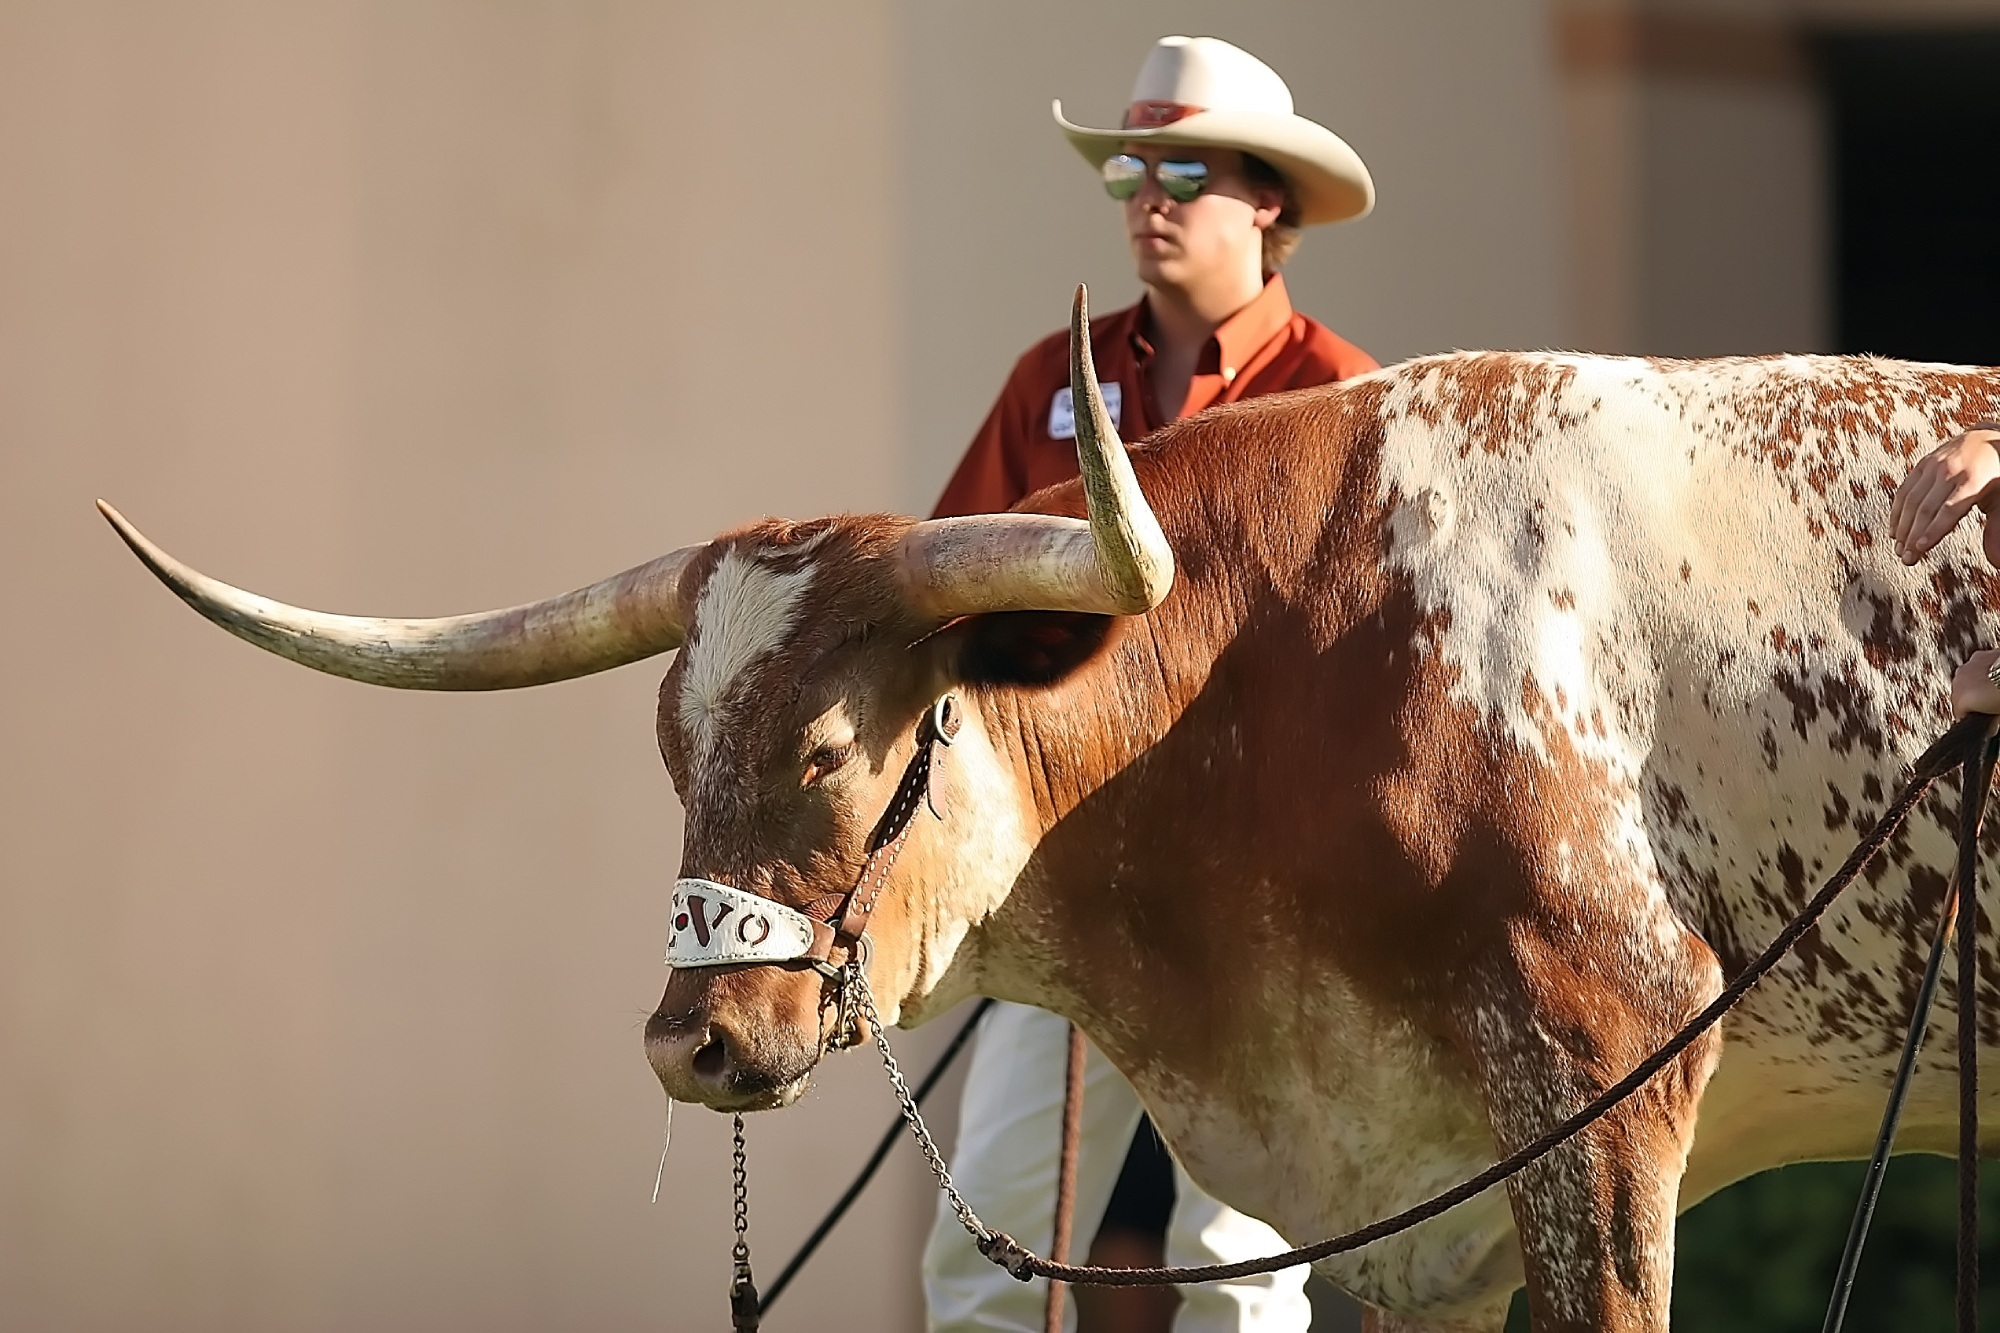 texas mascot charges photographers image